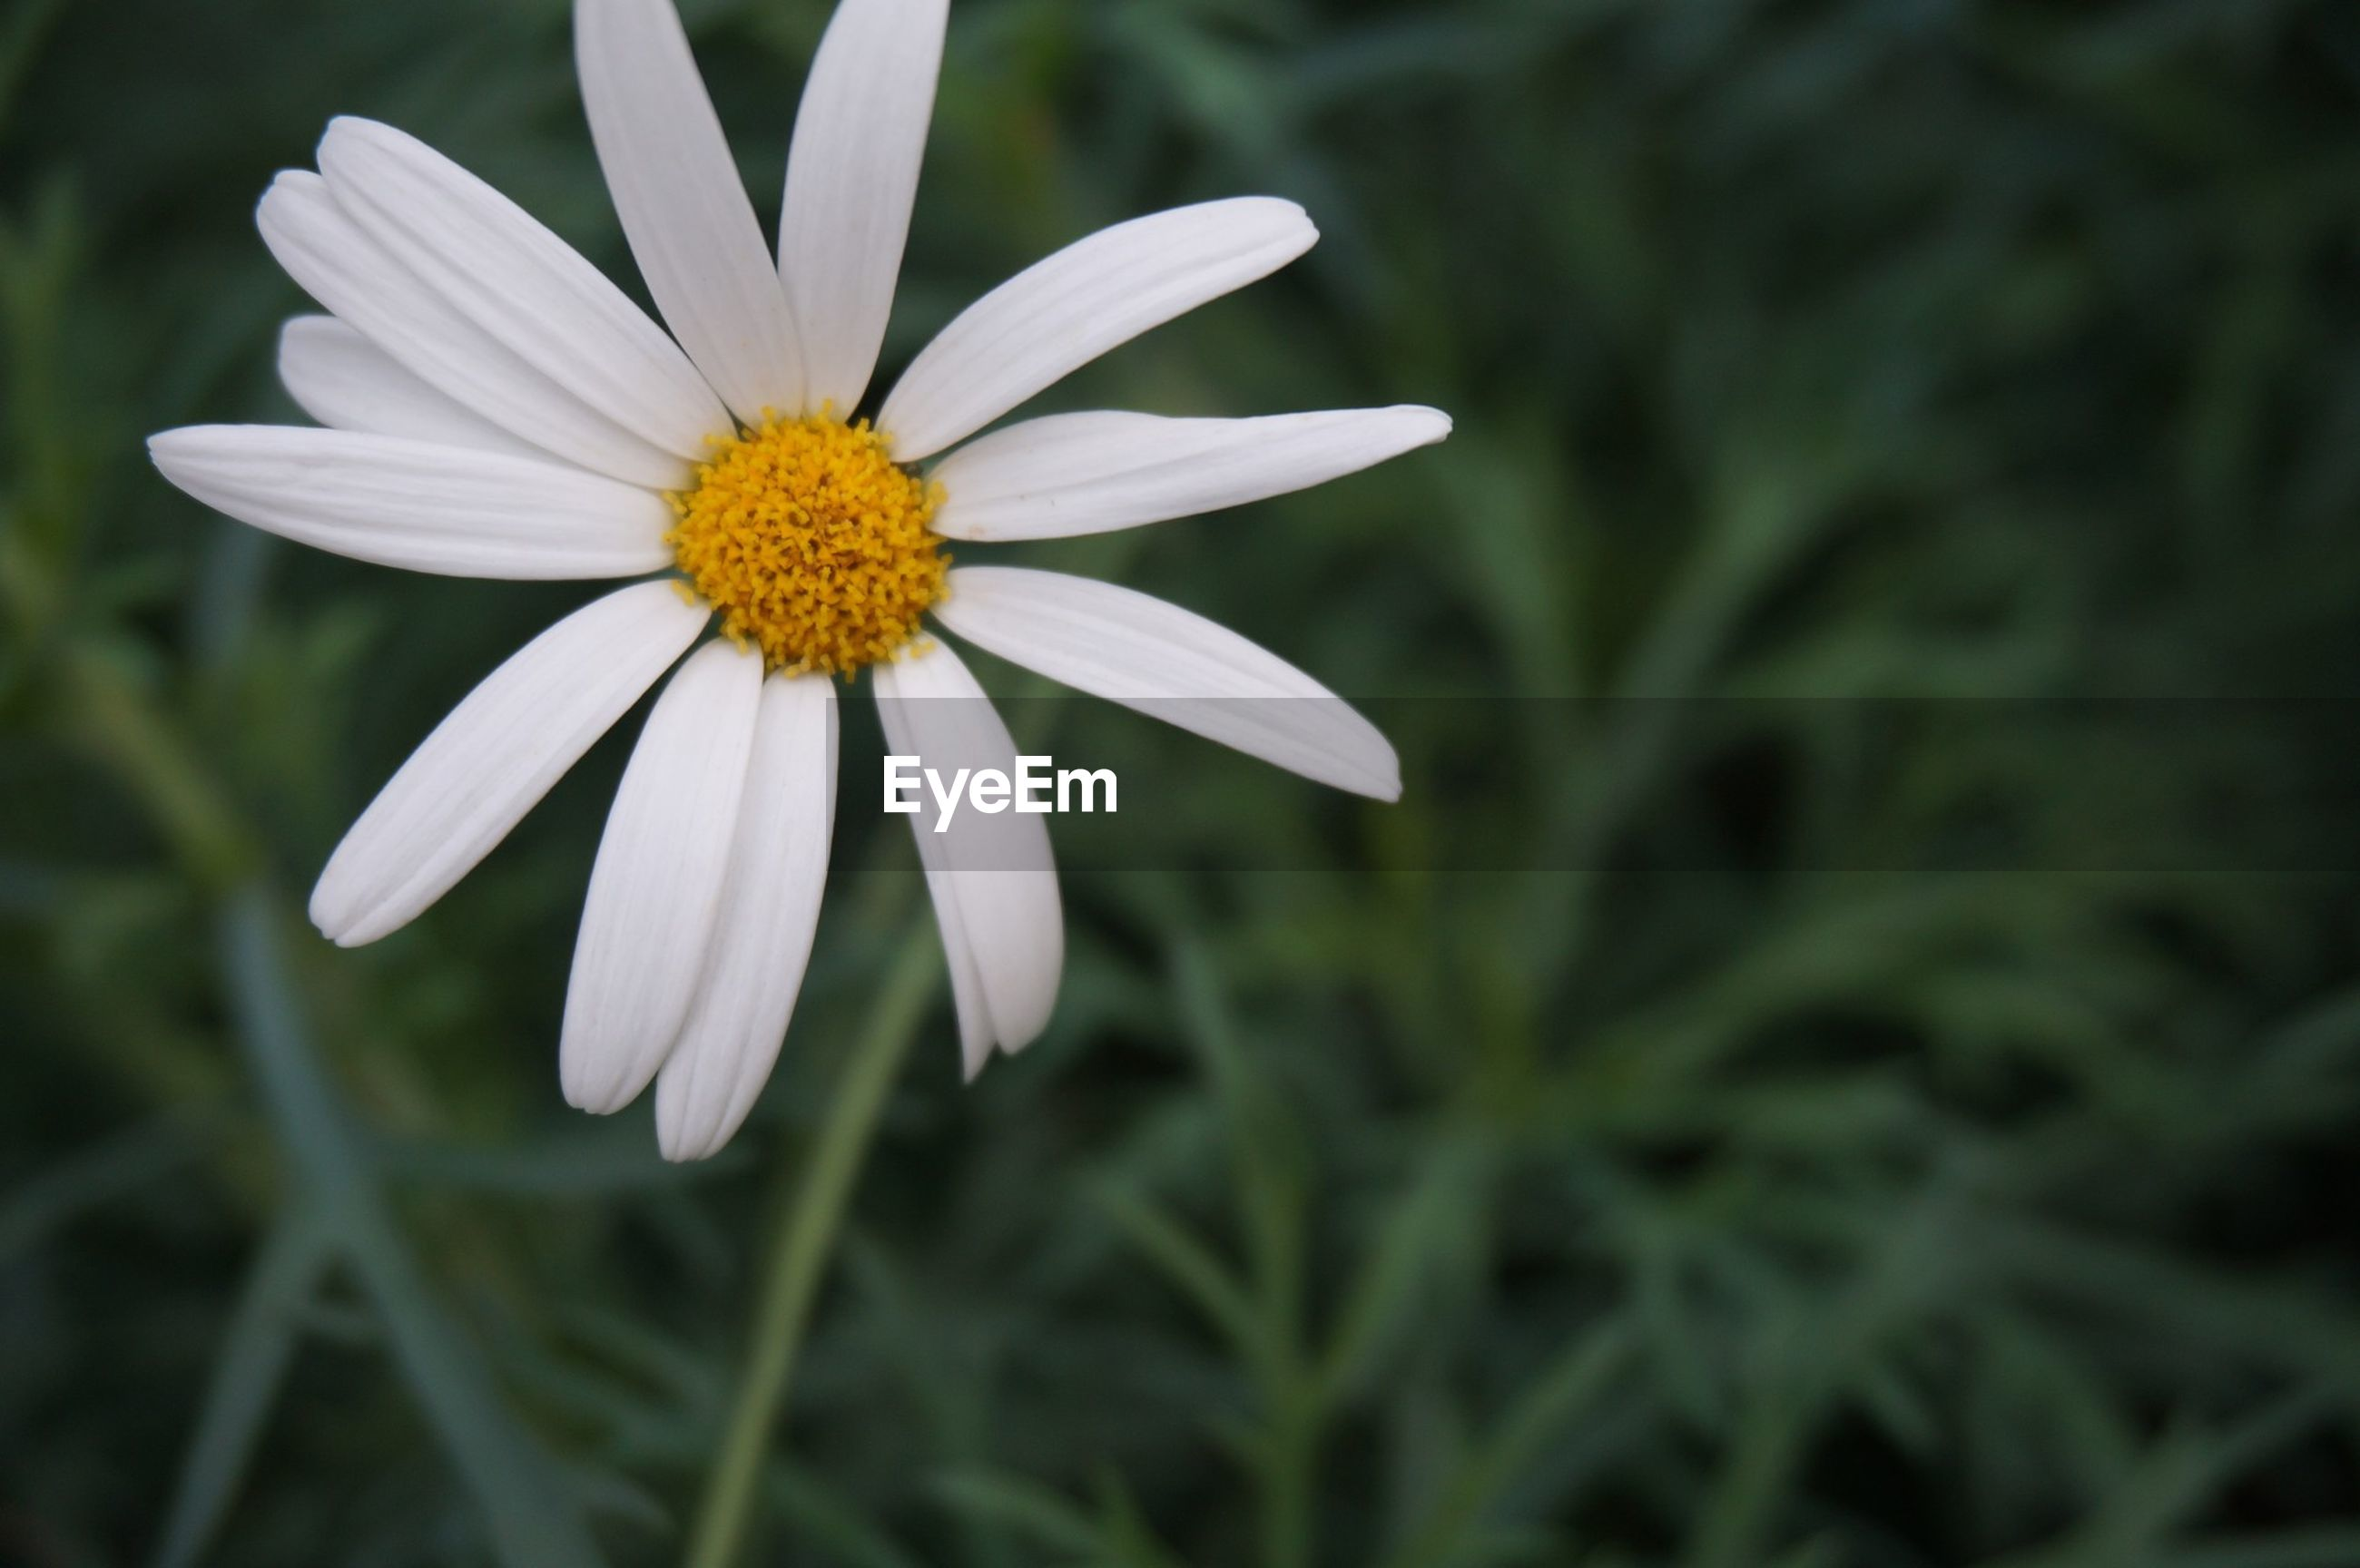 flower, freshness, petal, fragility, flower head, growth, beauty in nature, close-up, white color, pollen, blooming, daisy, nature, focus on foreground, plant, single flower, yellow, in bloom, selective focus, outdoors